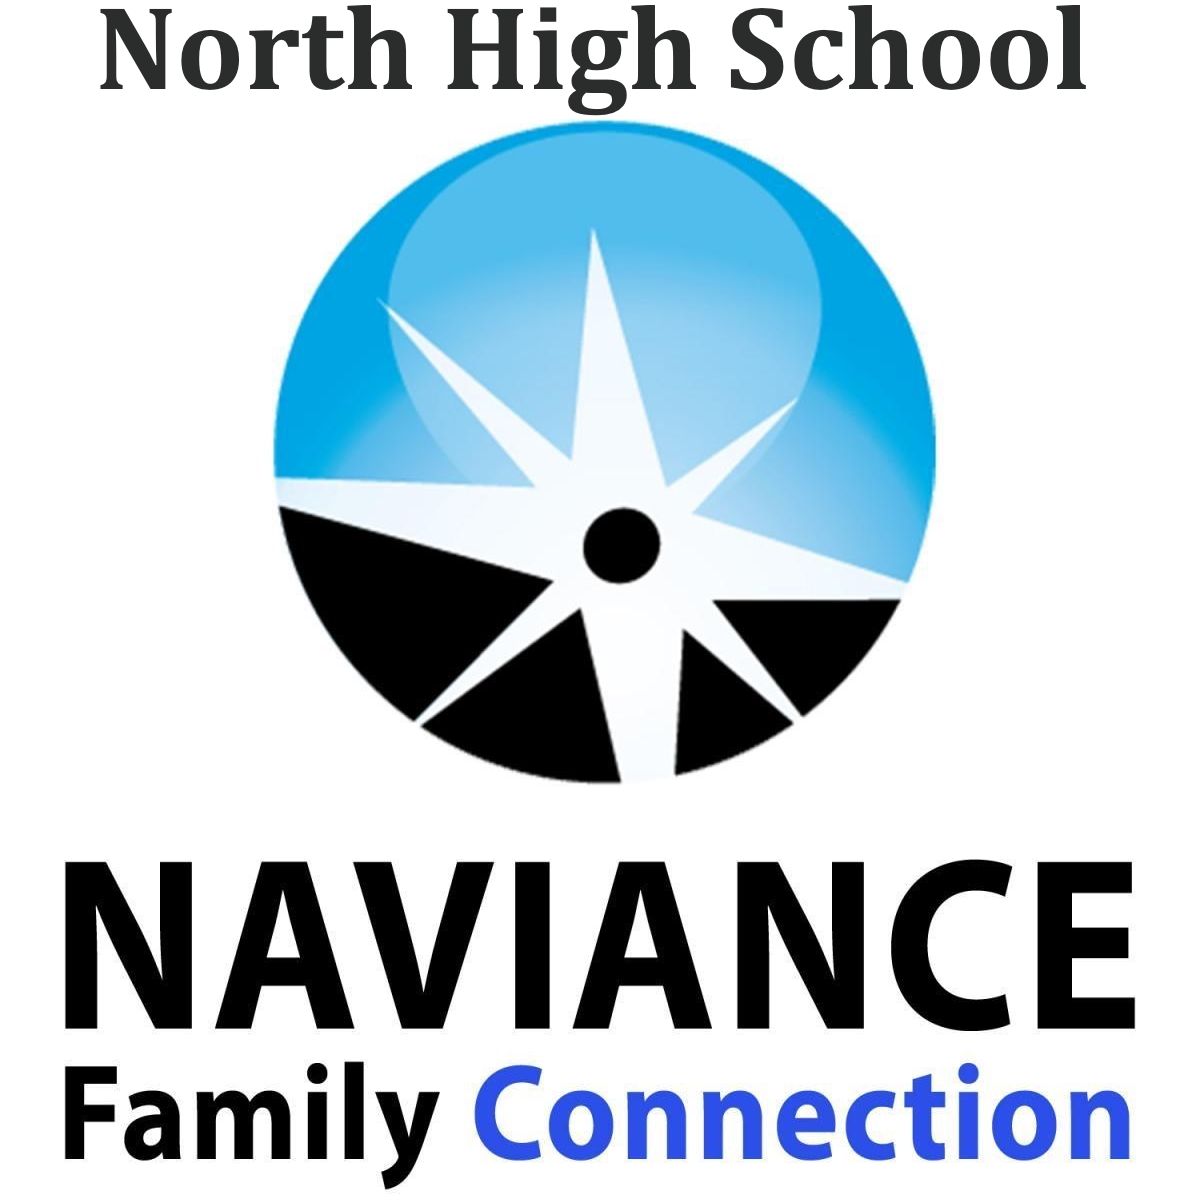 Image of North High Naviance Logo